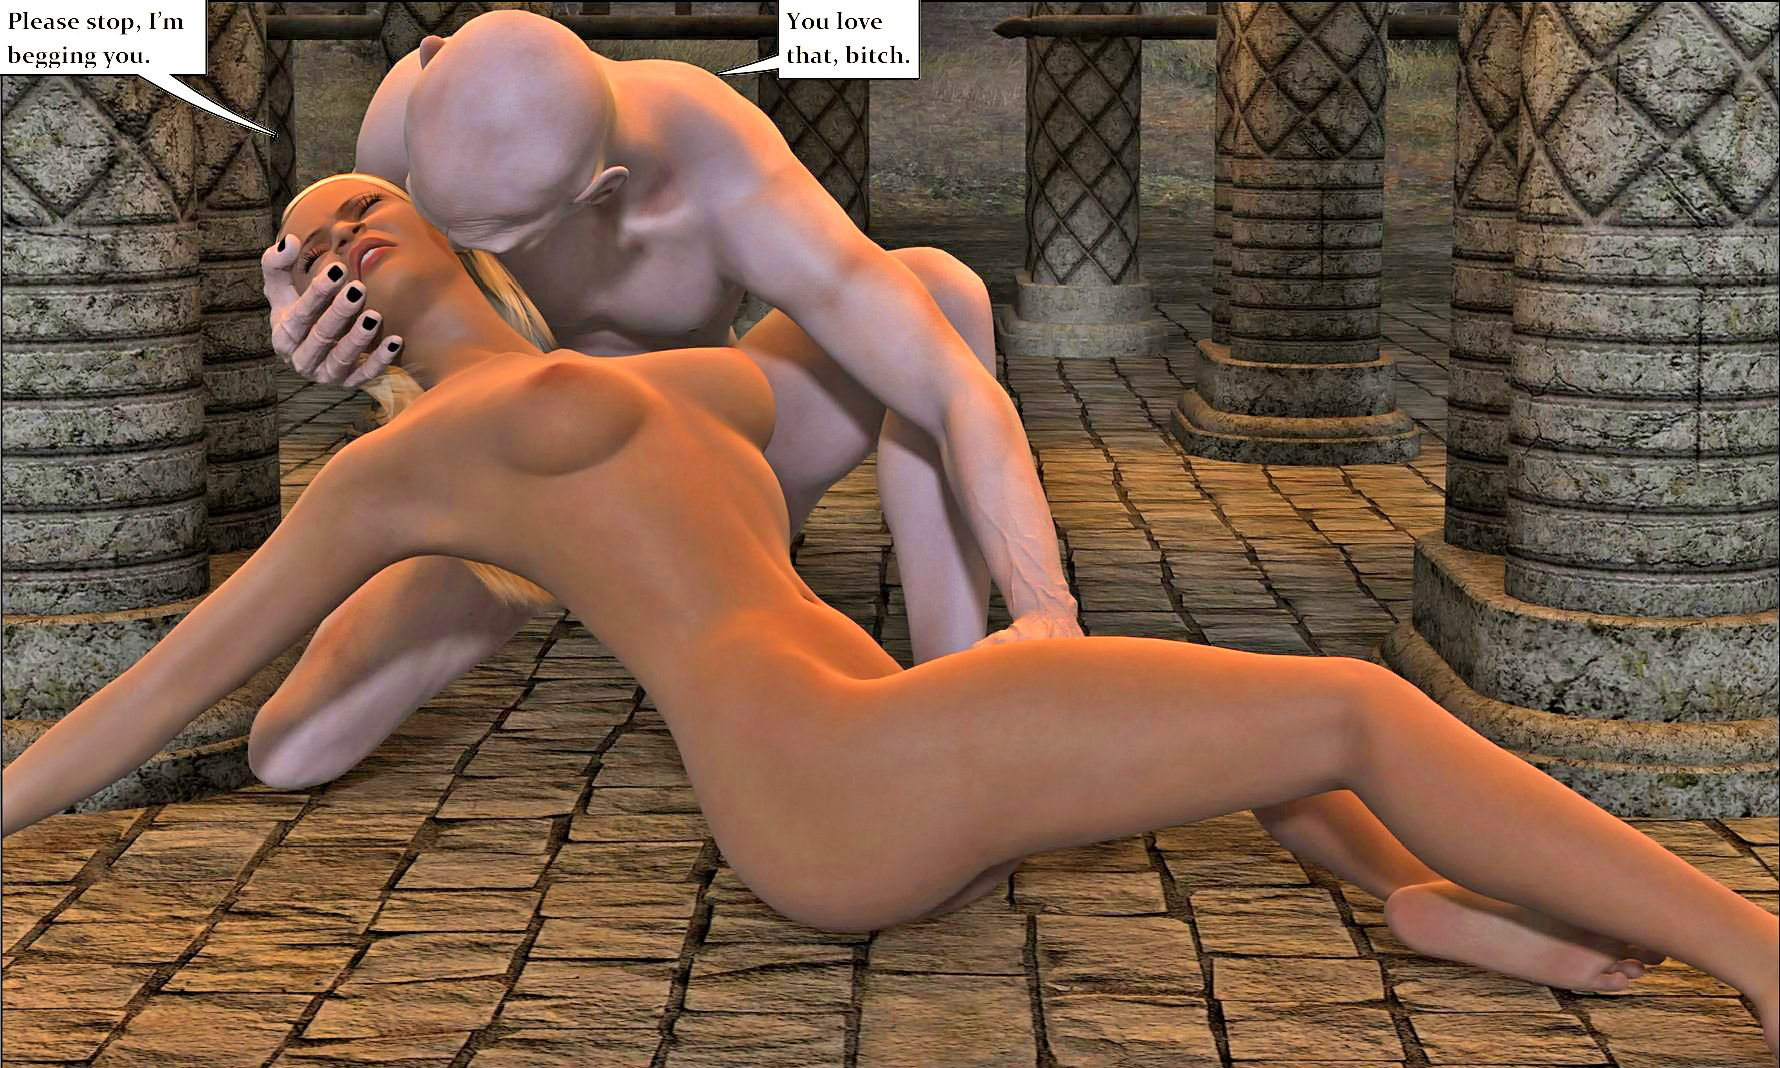 Download video tomb raider monster hentai porn clip